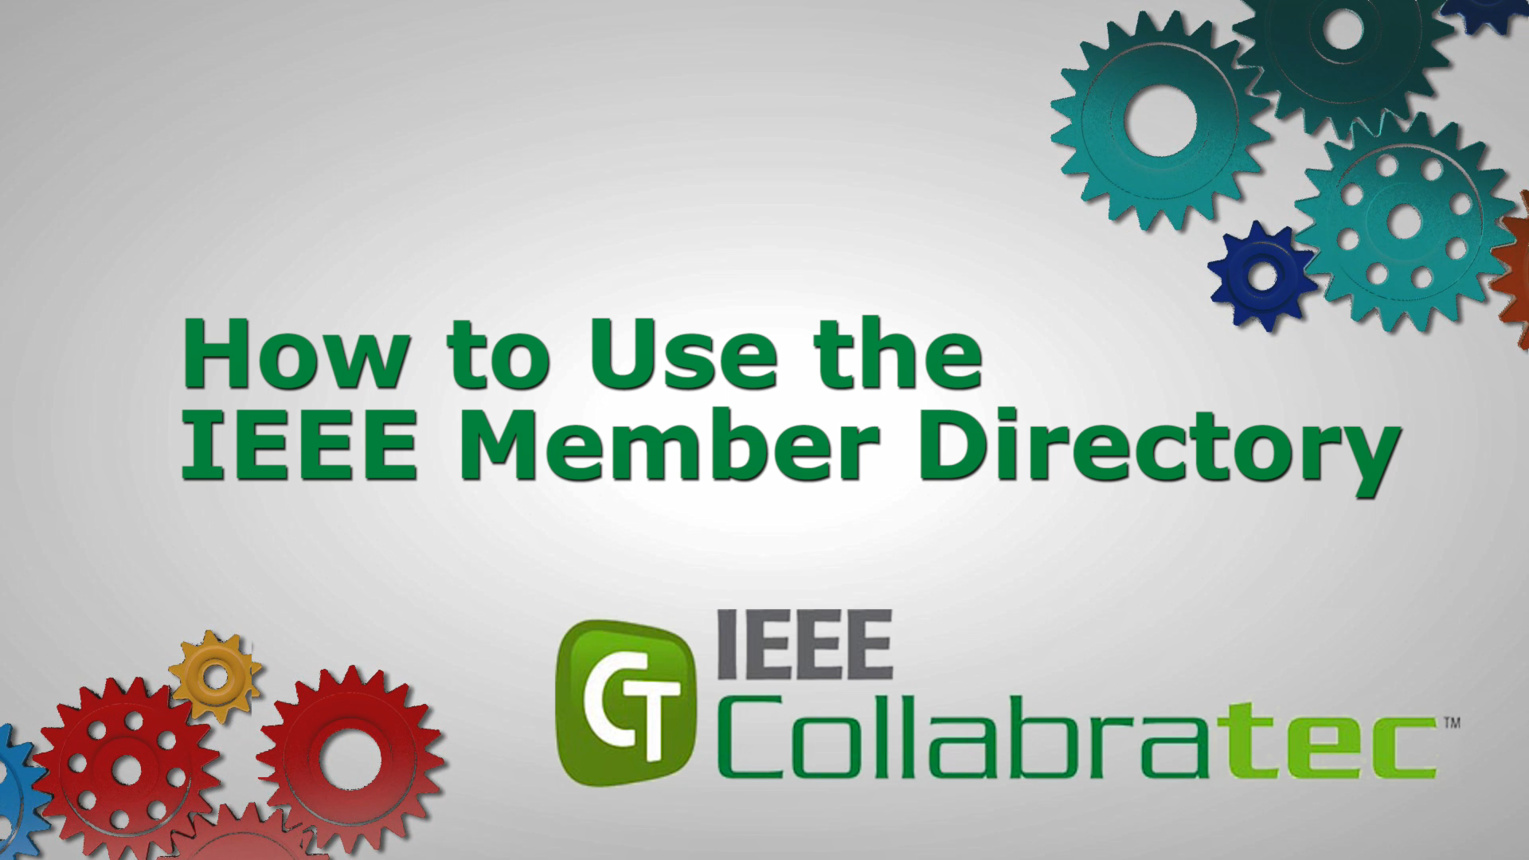 IEEE Collabratec: How to Use the IEEE Member Directory